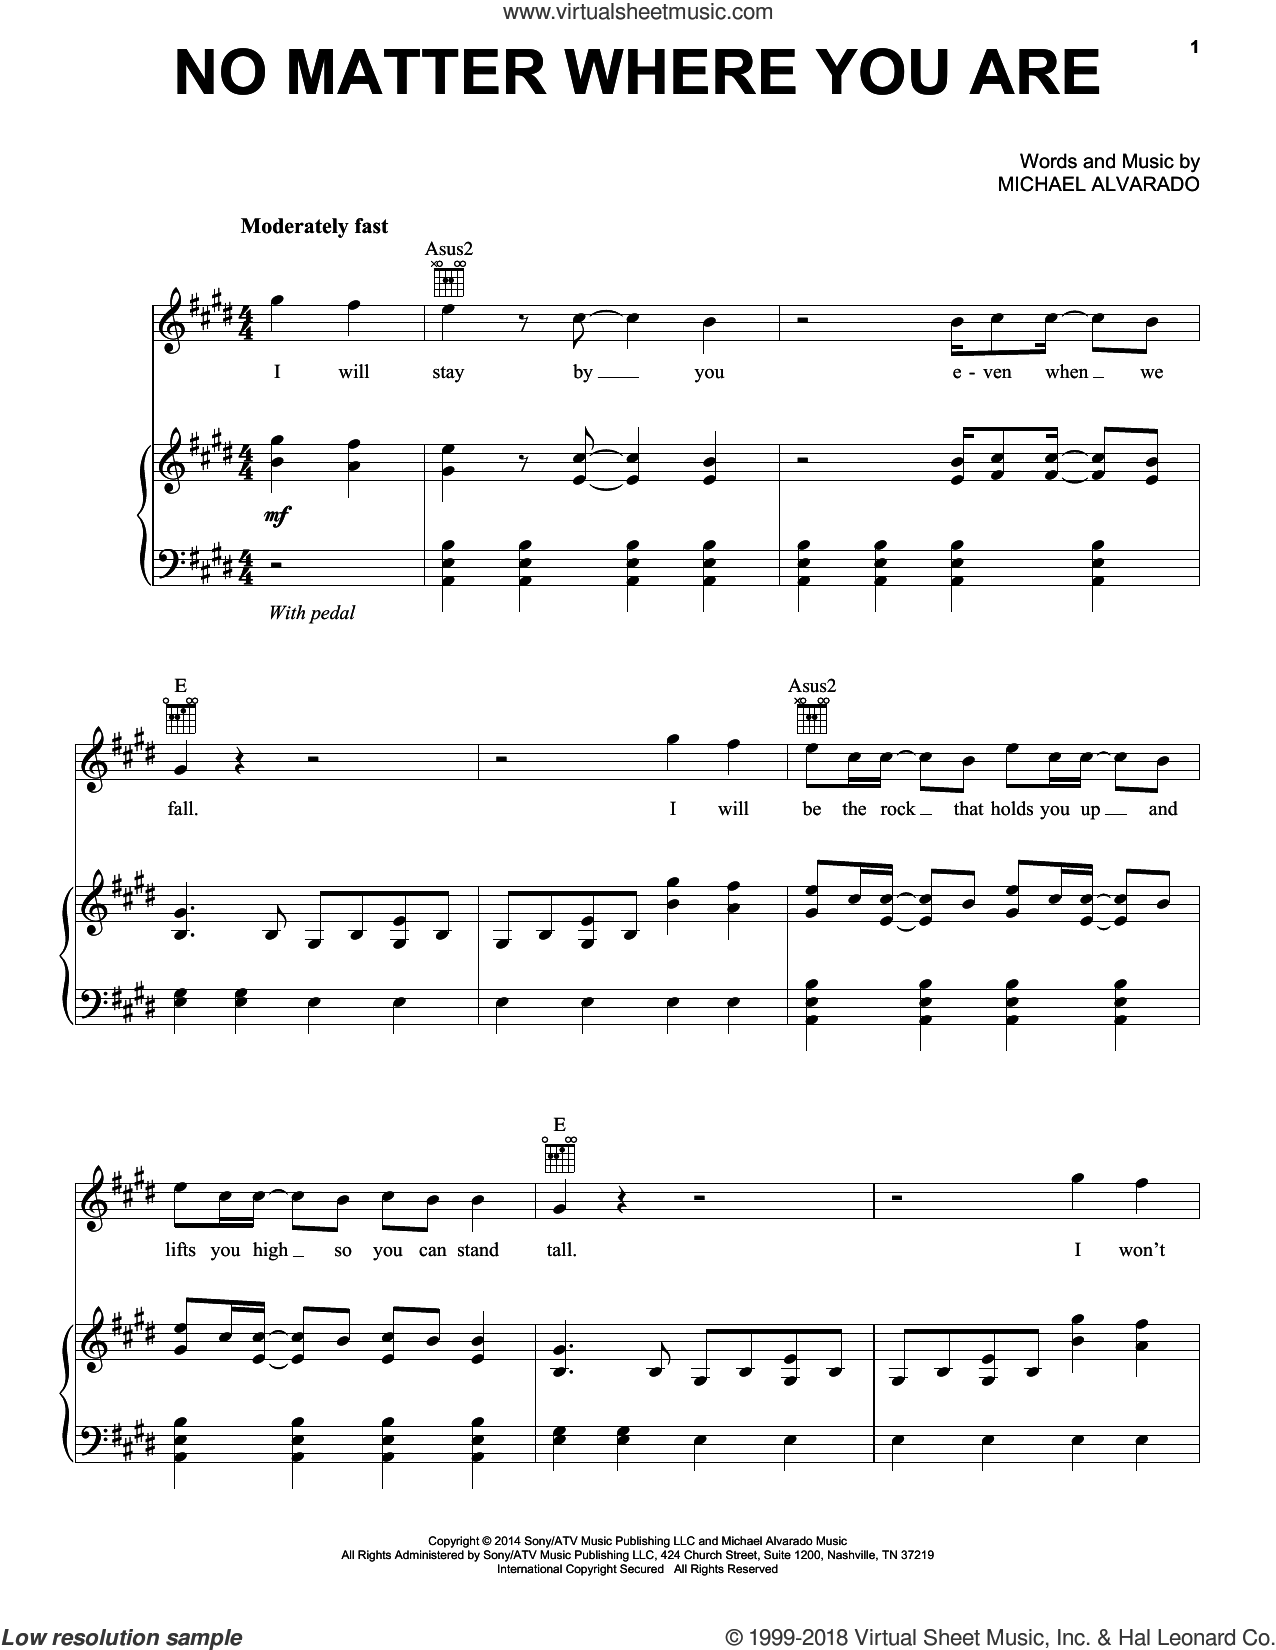 No Matter Where You Are sheet music for voice, piano or guitar by Us The Duo and Michael Alvarado, intermediate skill level